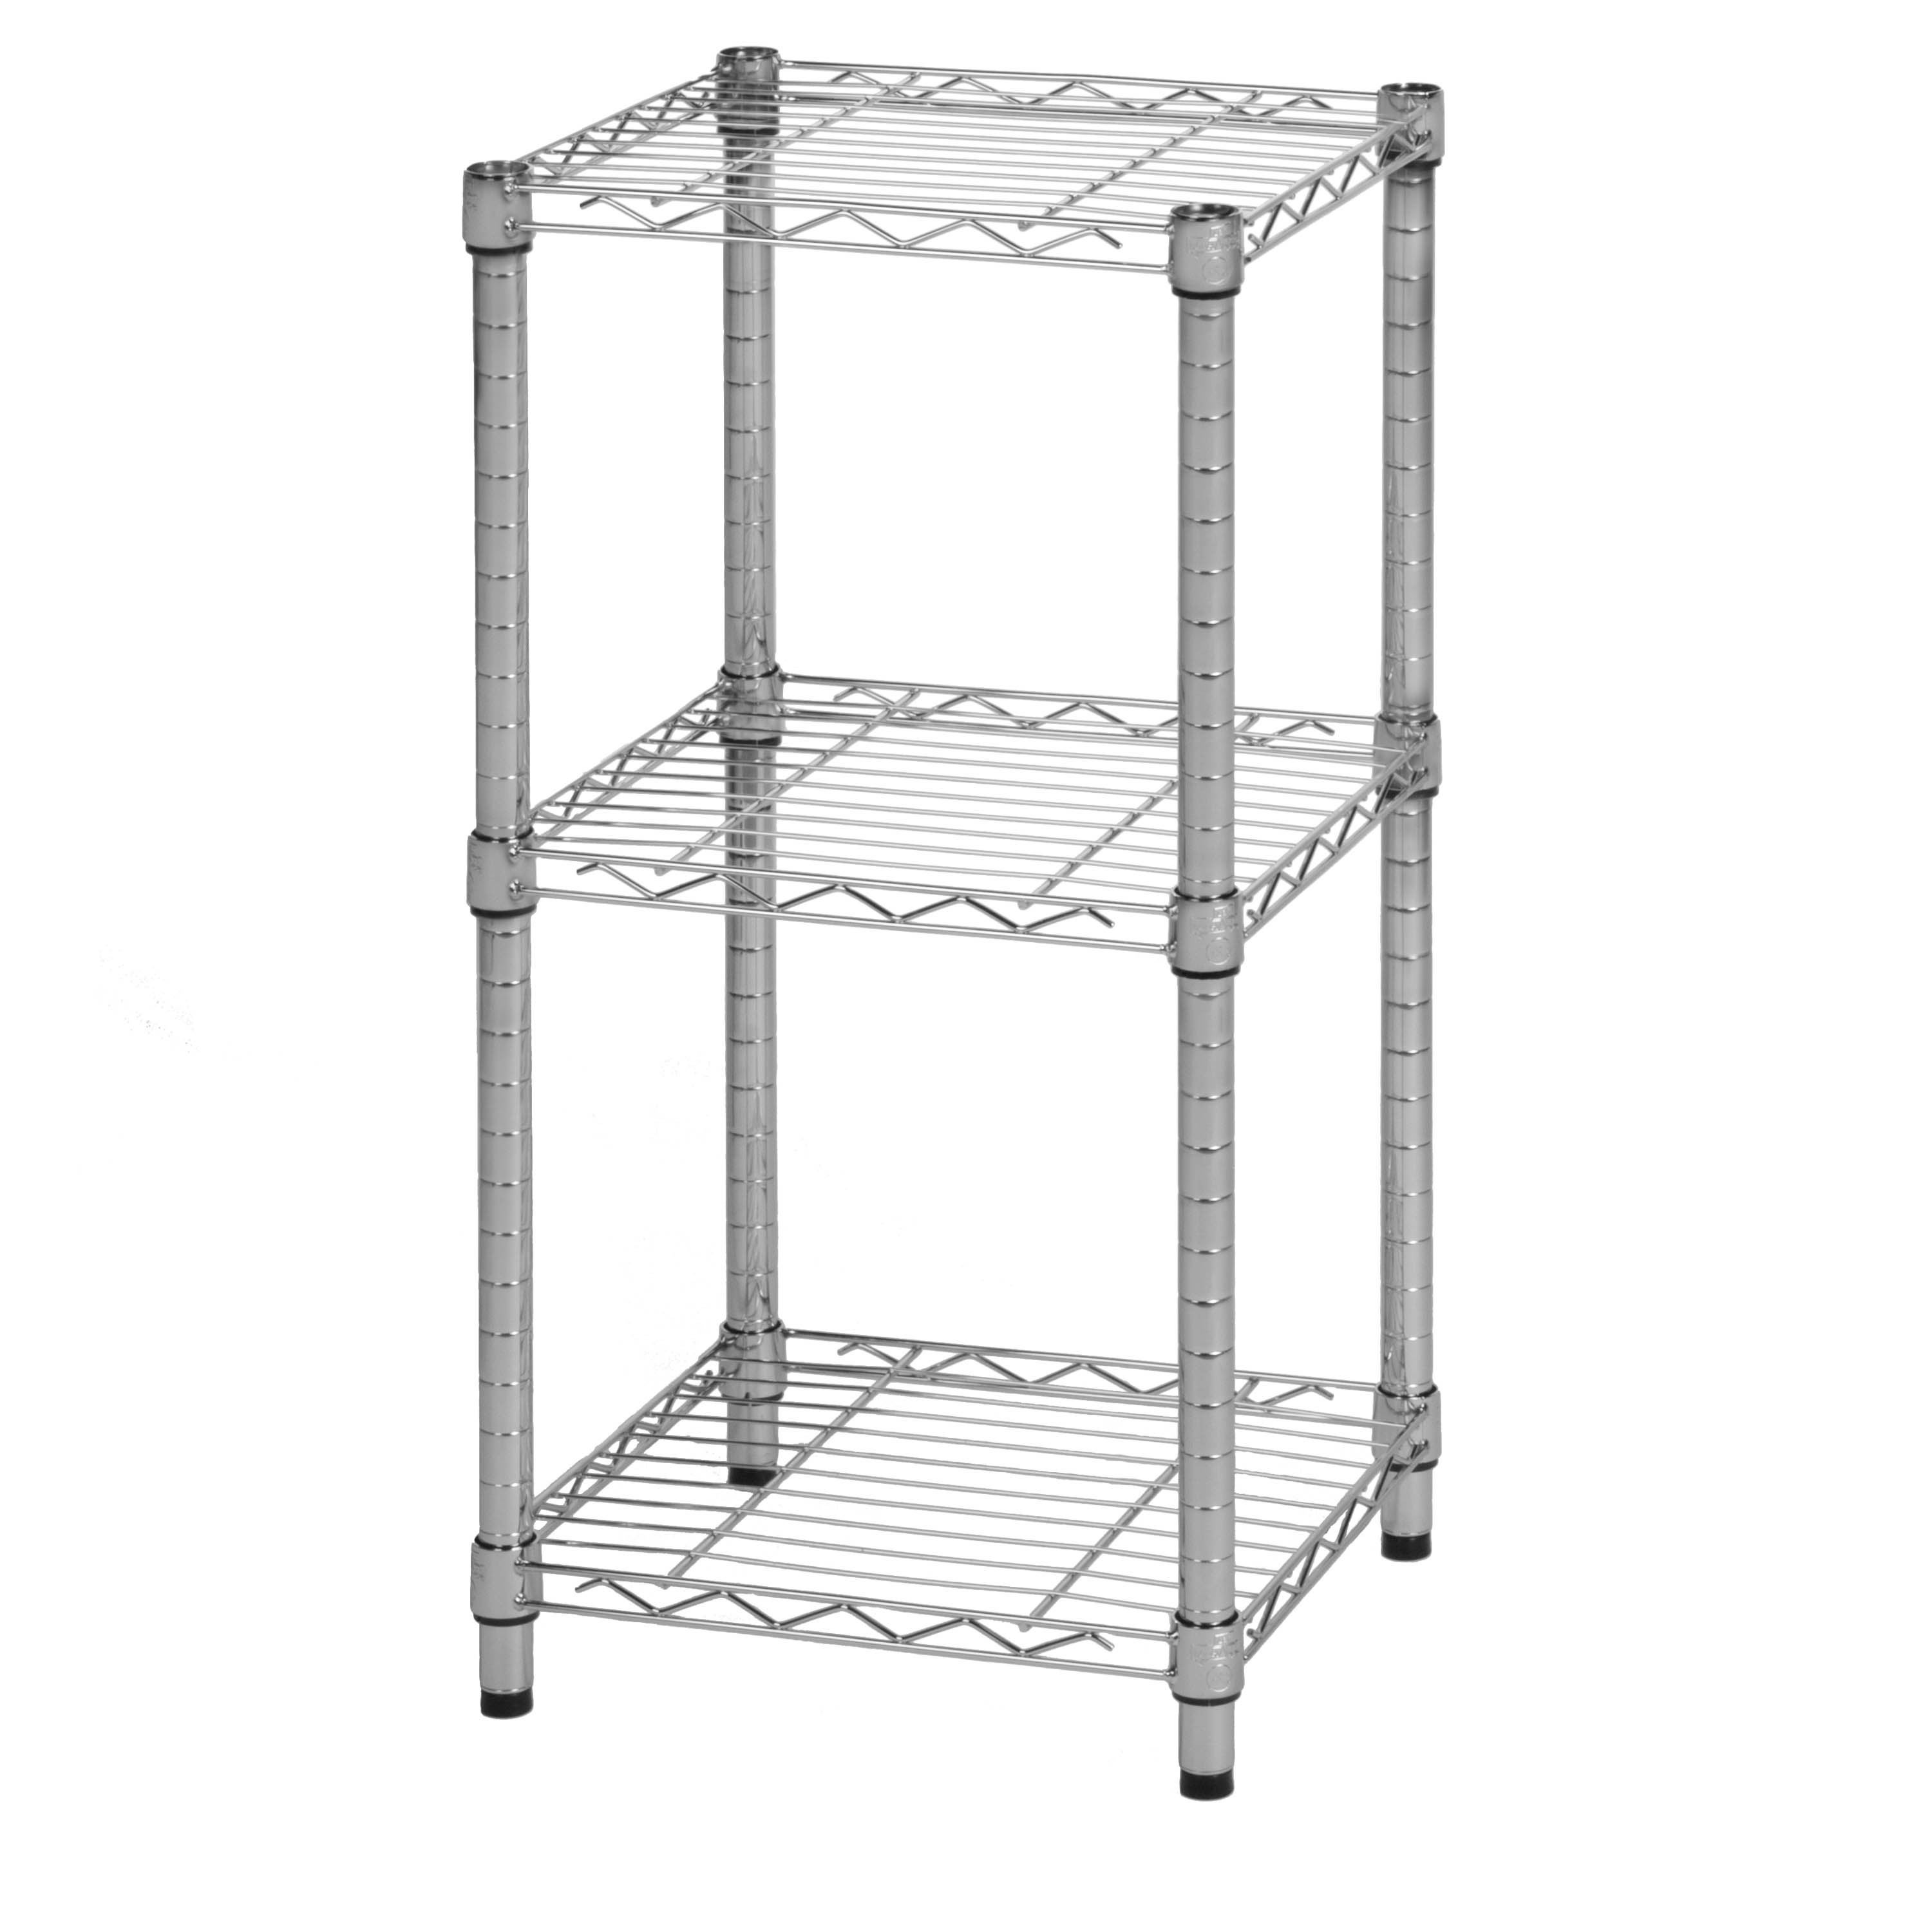 Shop Honey Can Do 3-tier Steel Wire Shelving Tower - On Sale - Free ...